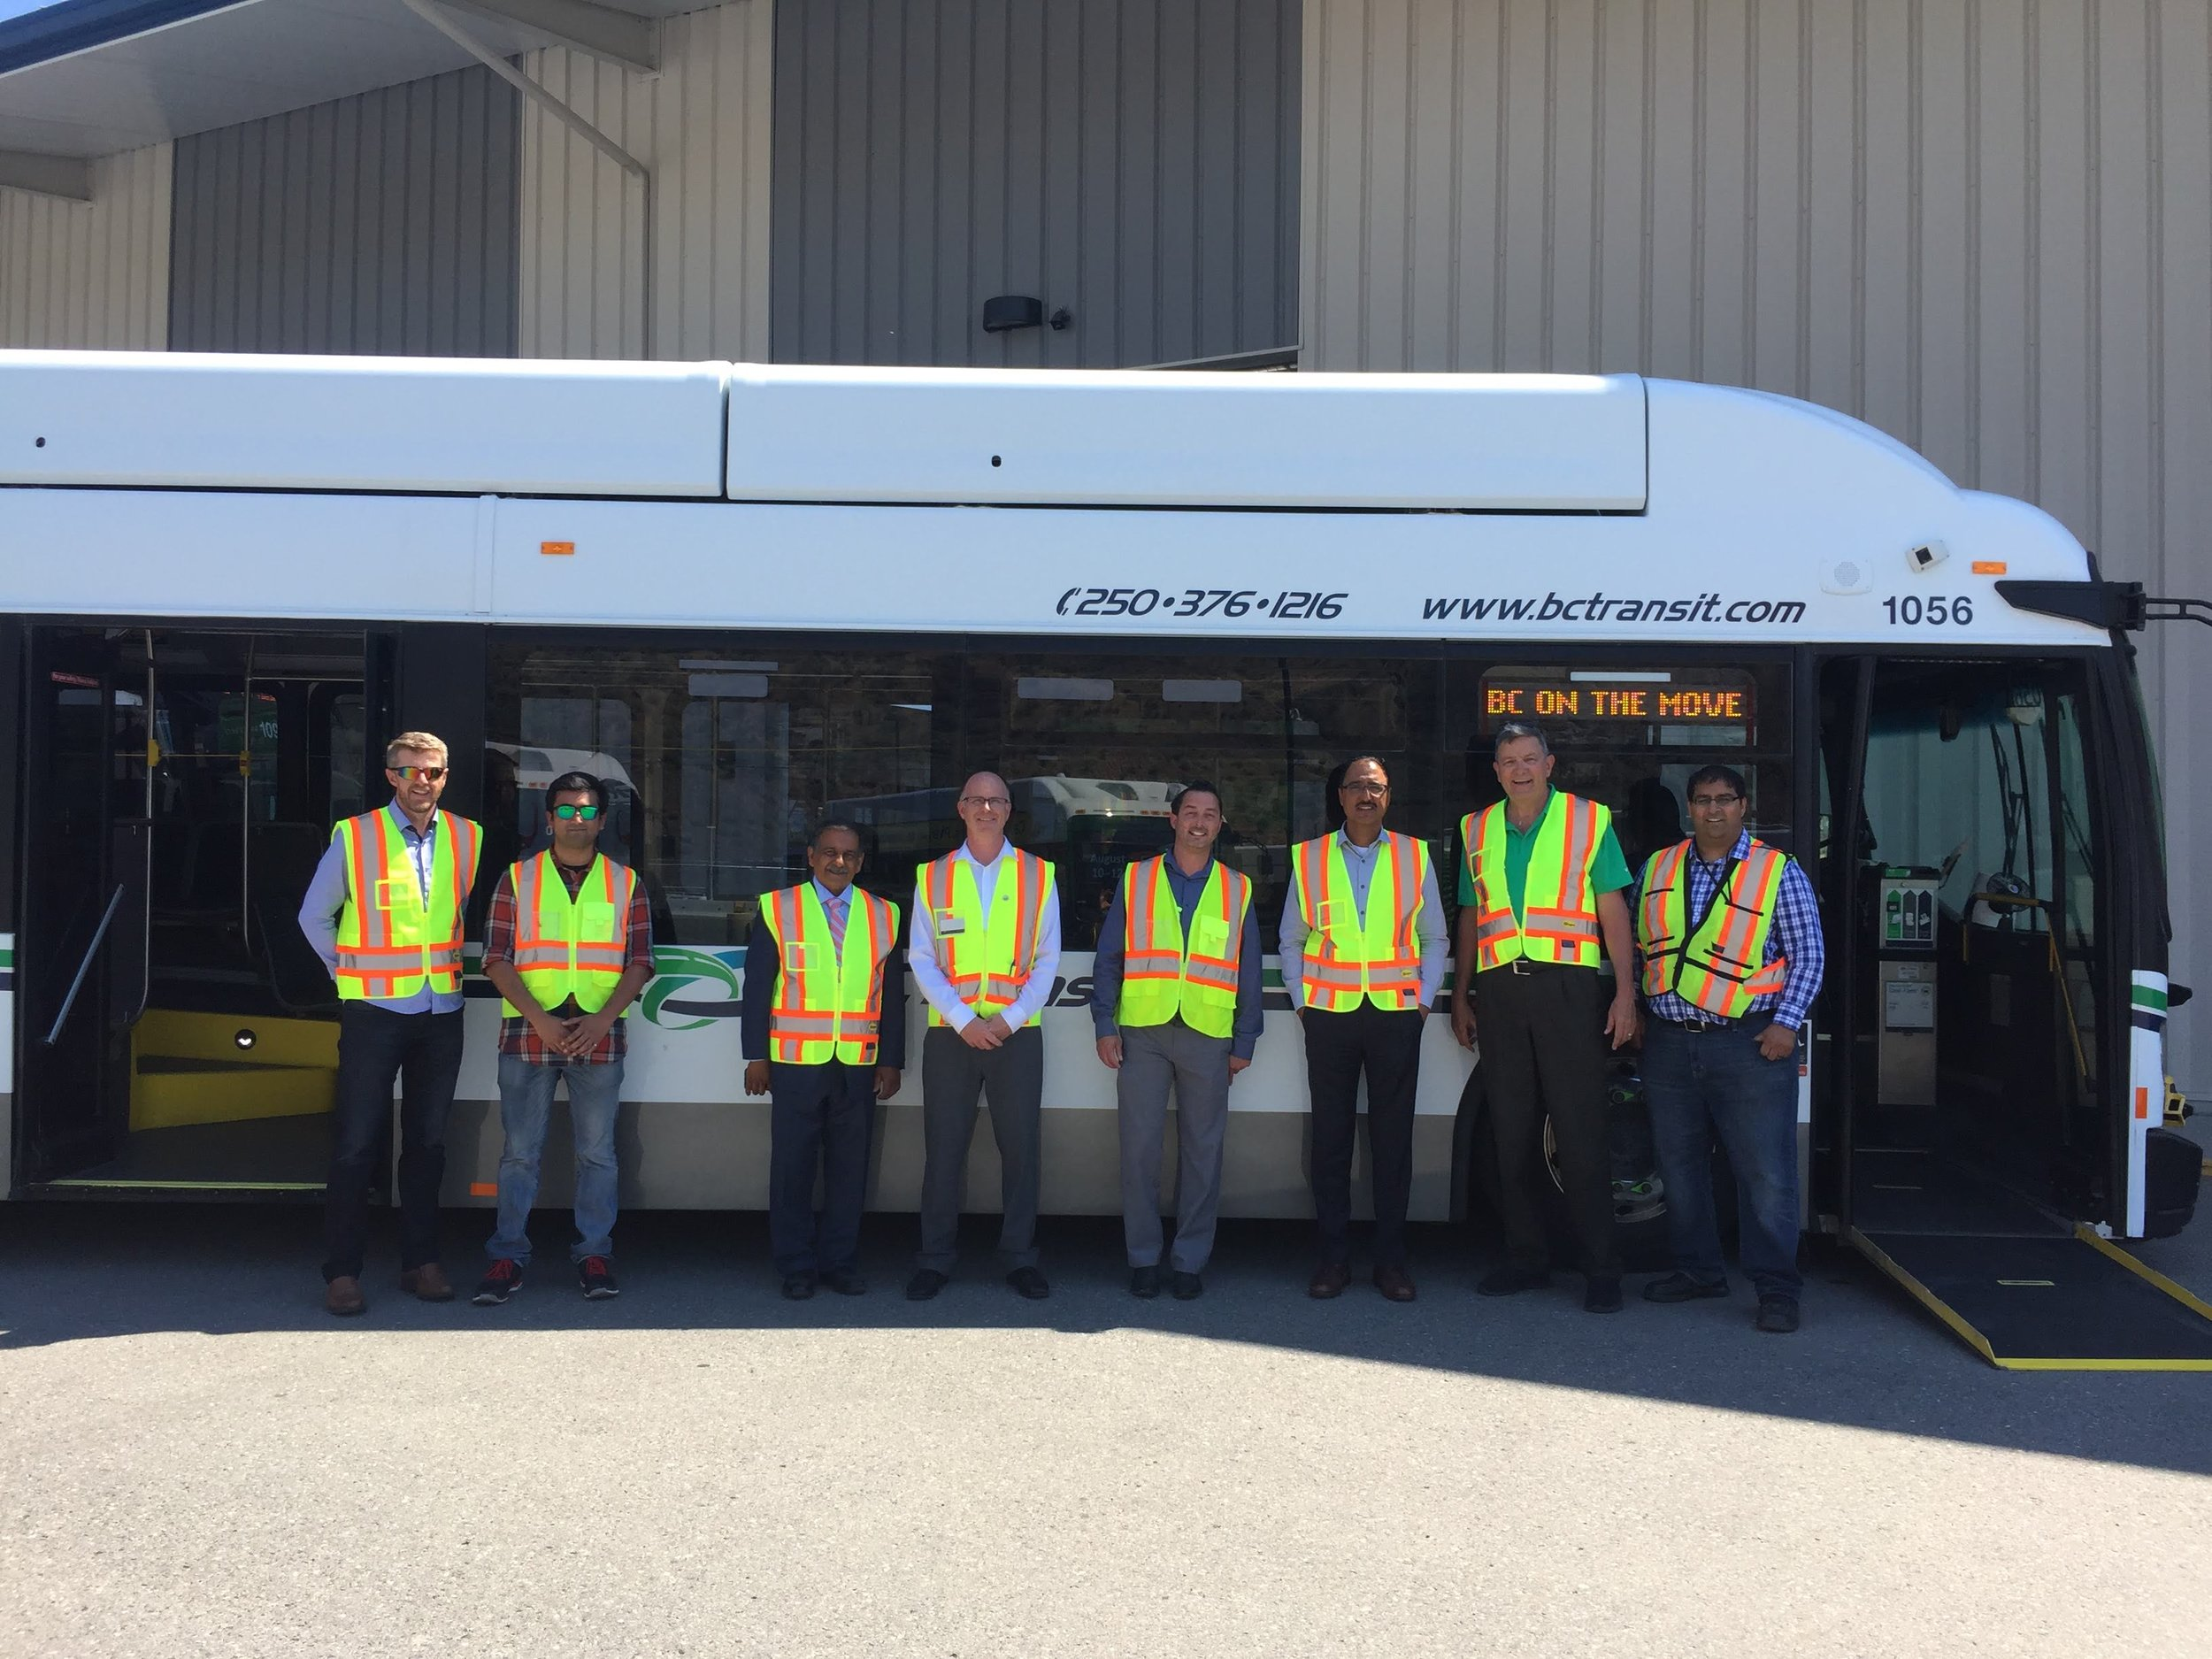 Supporting transit improvements